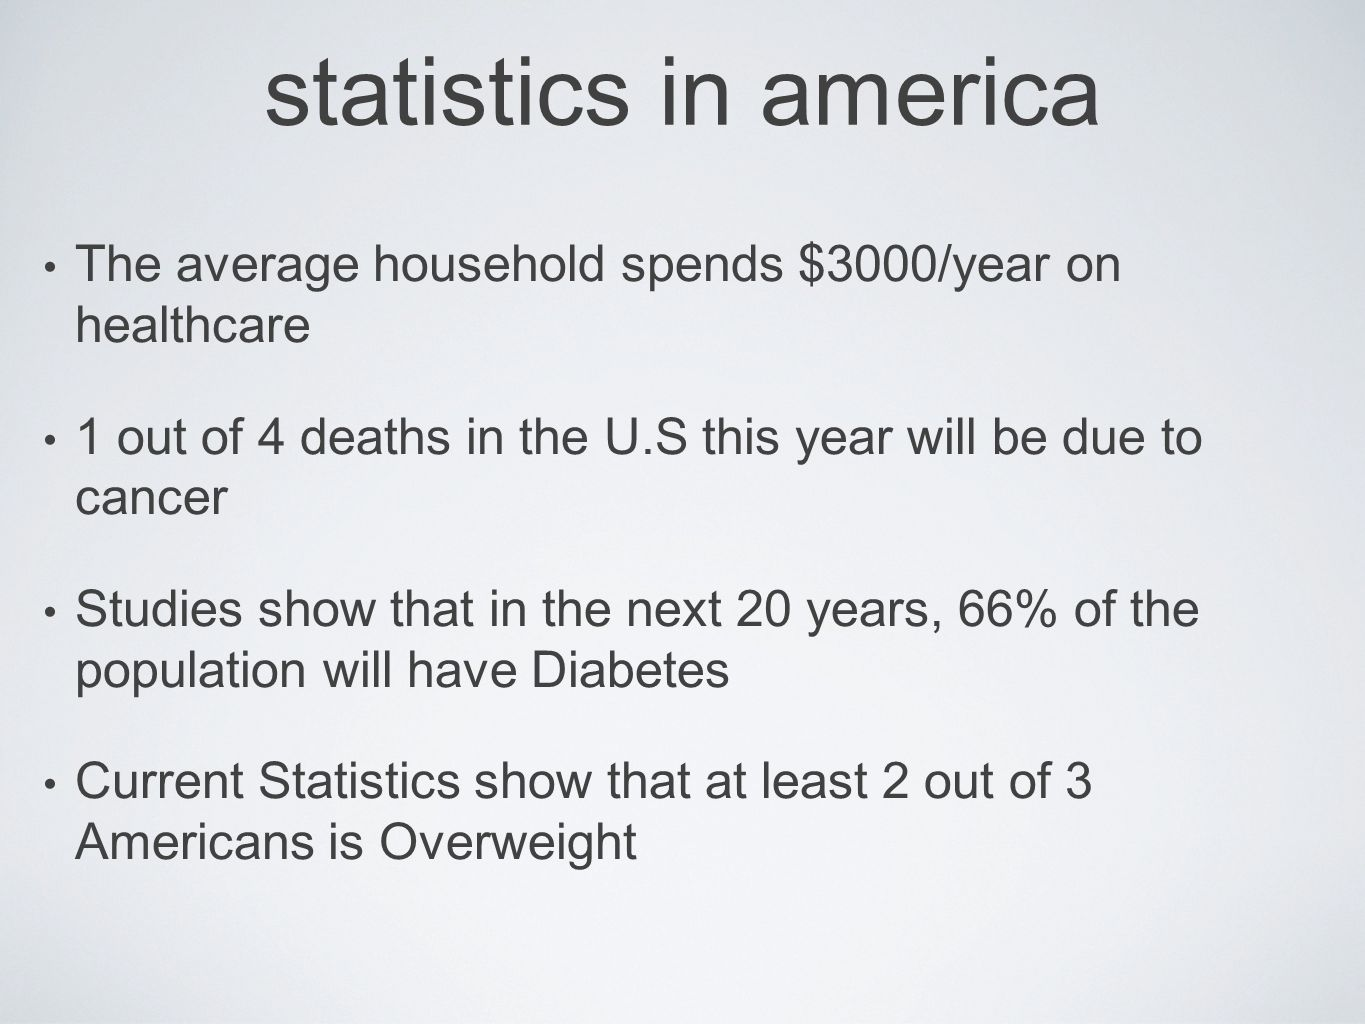 statistics in americaThe average household spends $3000/year on healthcare. 1 out of 4 deaths in the U.S this year will be due to cancer.